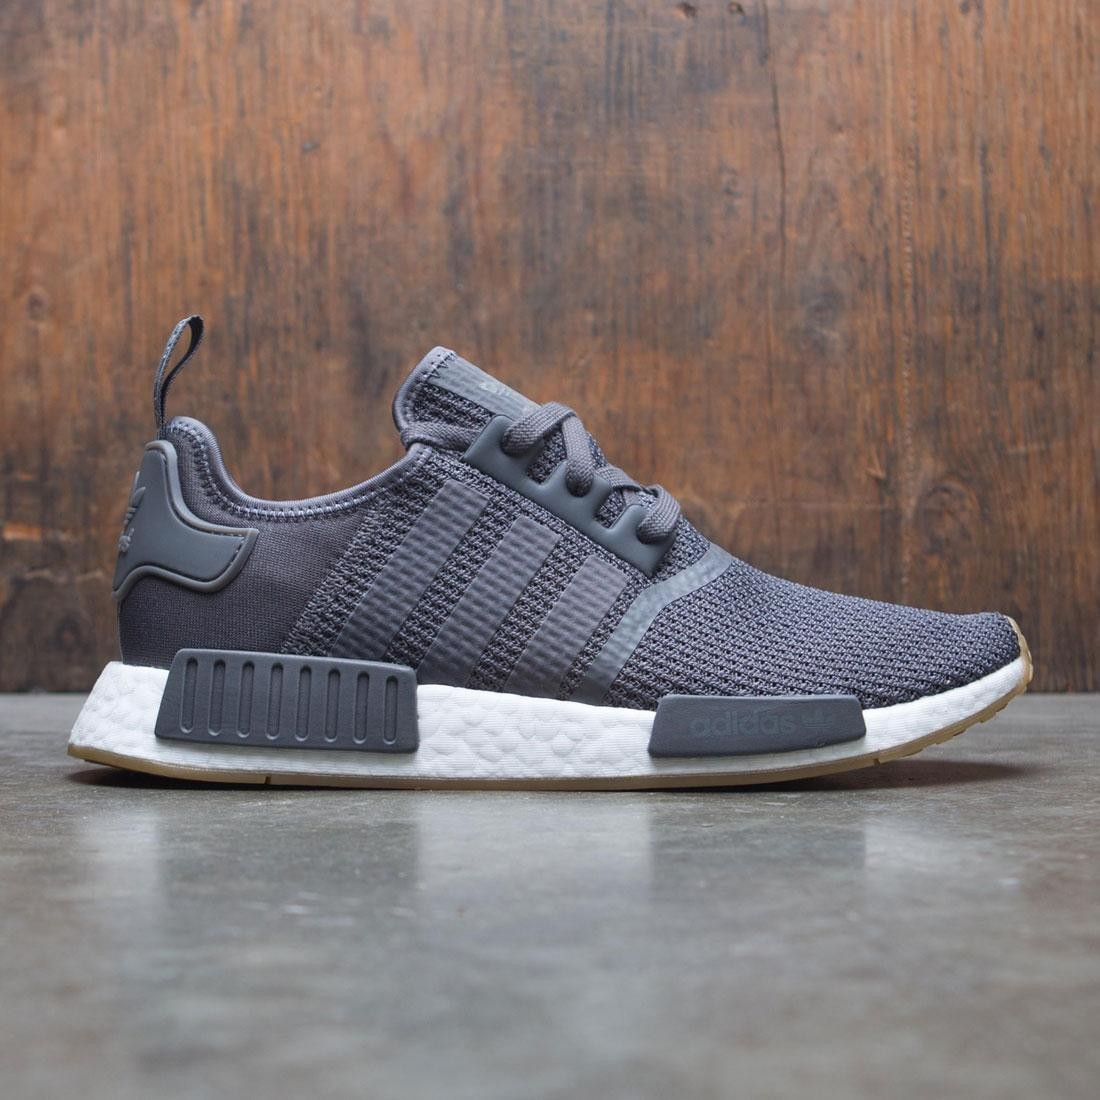 0ad29e3c0 Adidas Men NMD R1 gray grey five core black